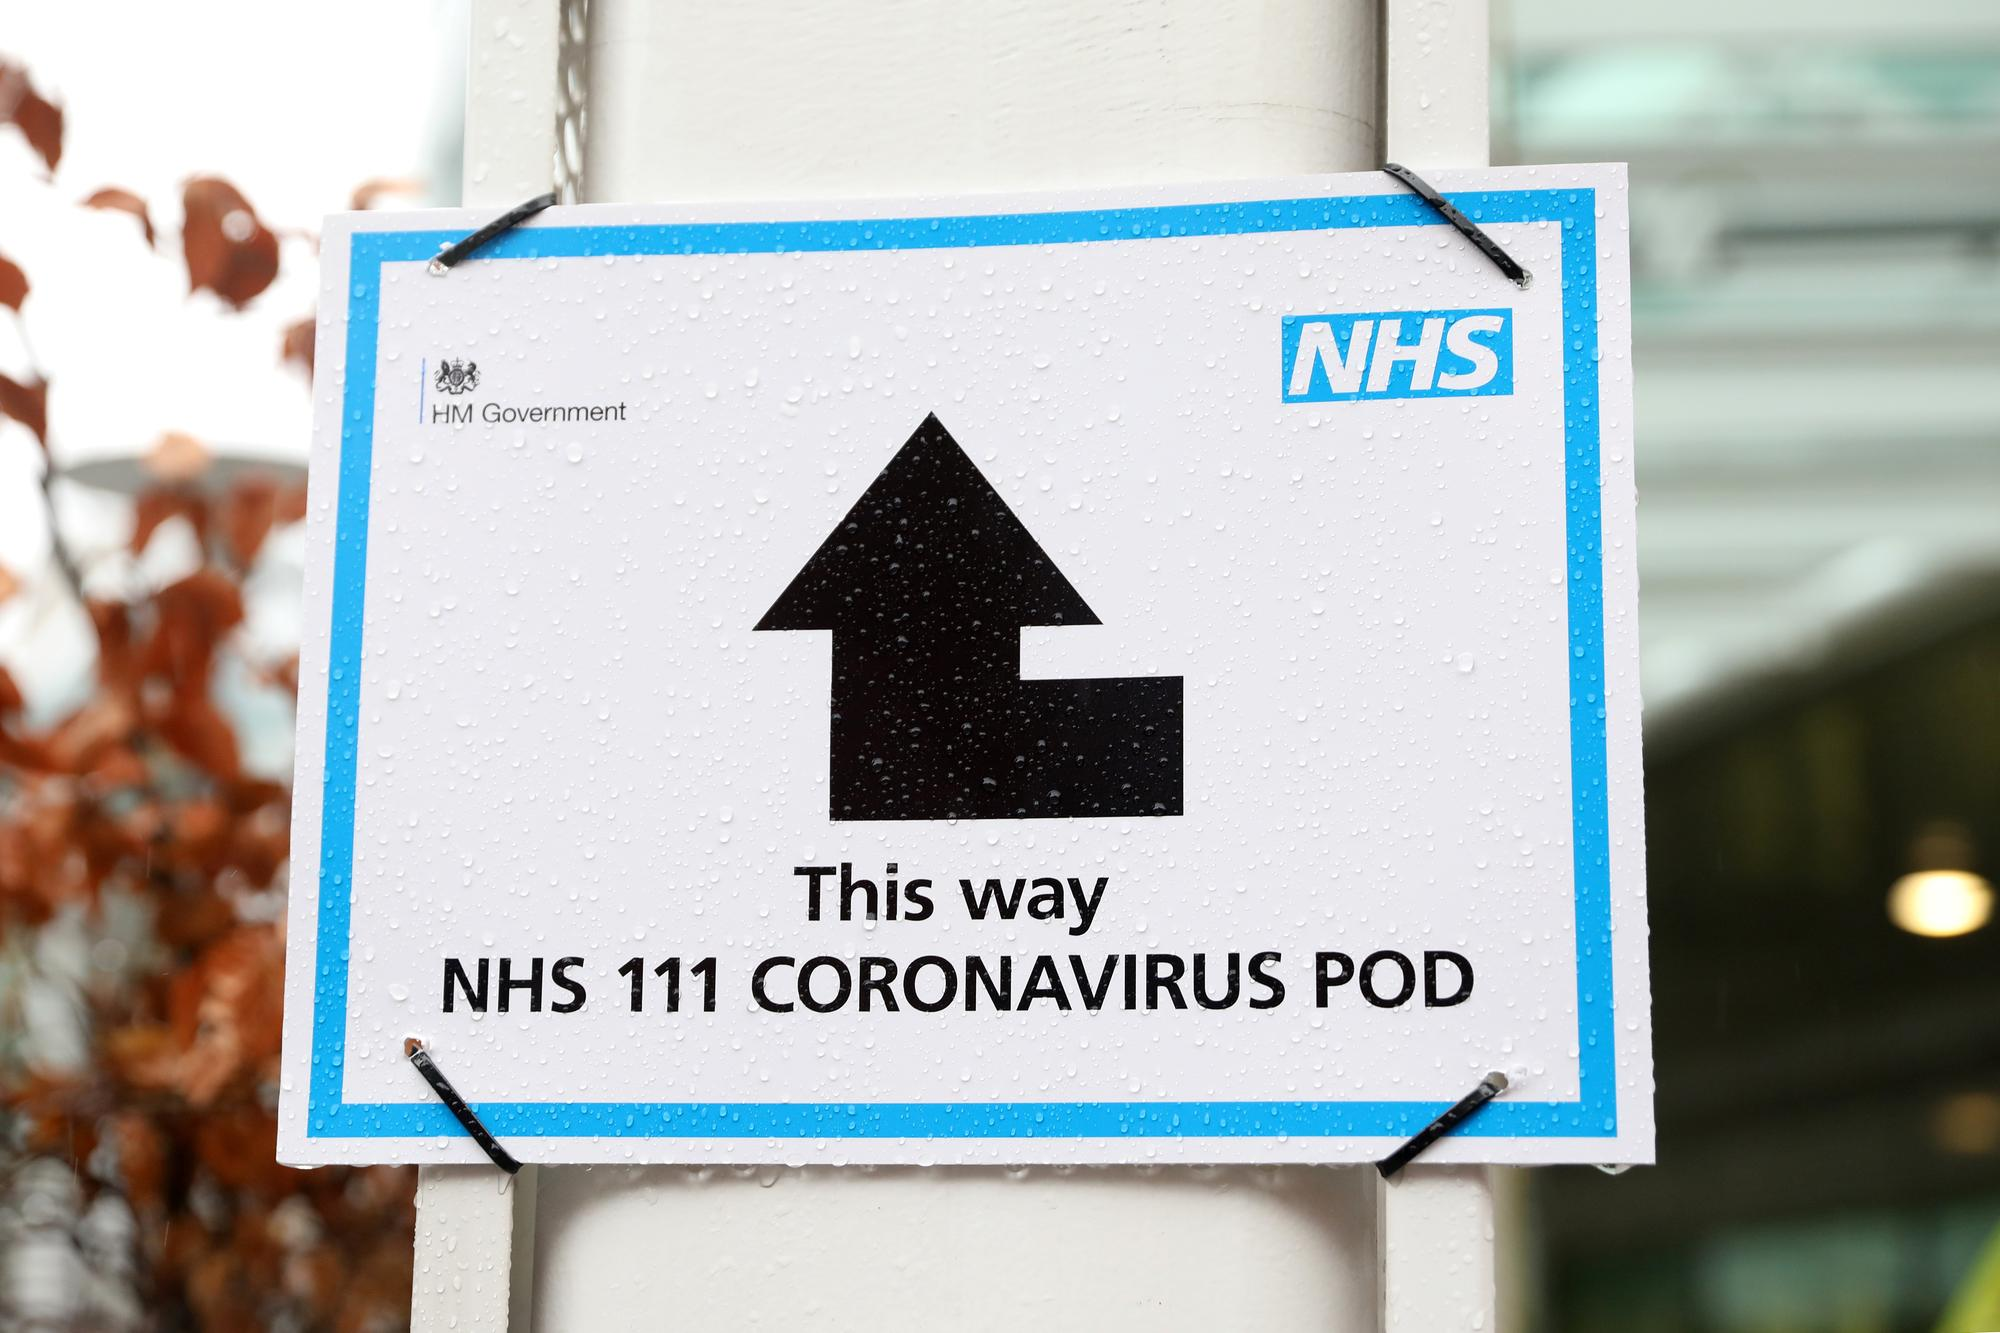 Coronavirus symptoms: Here are the signs to watch out for as first ...